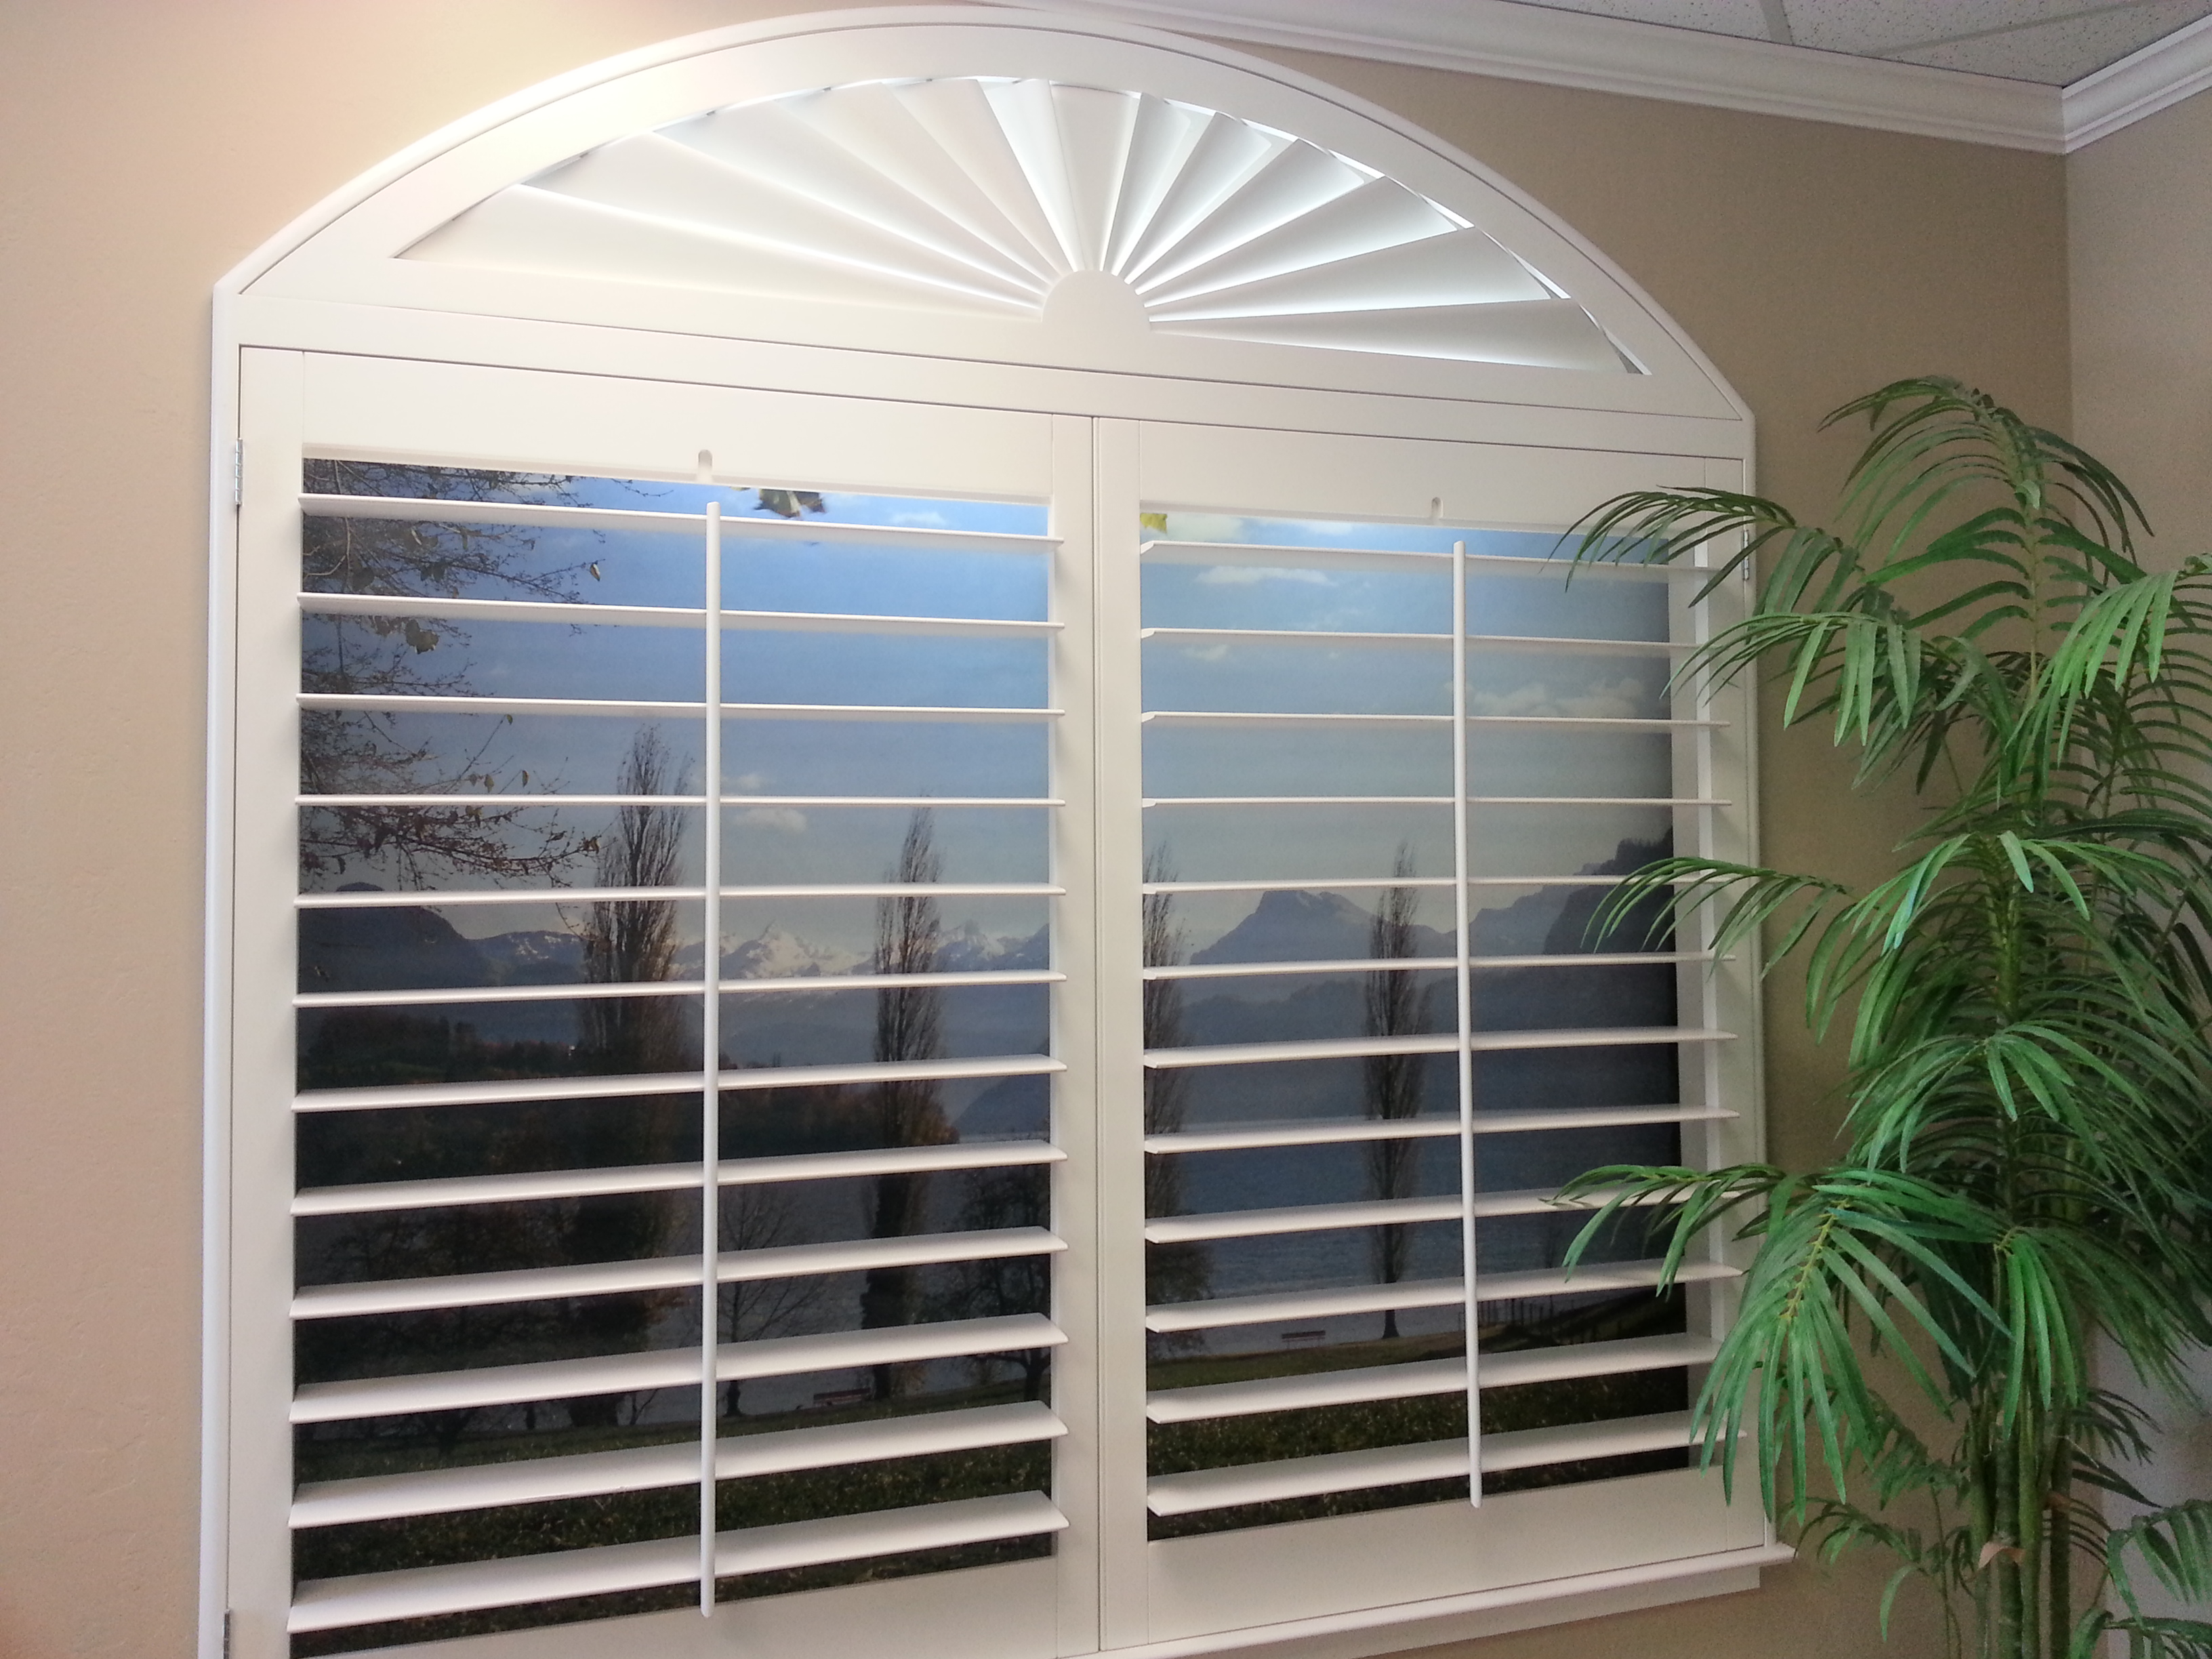 Diy Shutters Interior Cool Diy Shutters Tilt Rod Options For Window Shutters With Diy Shutters